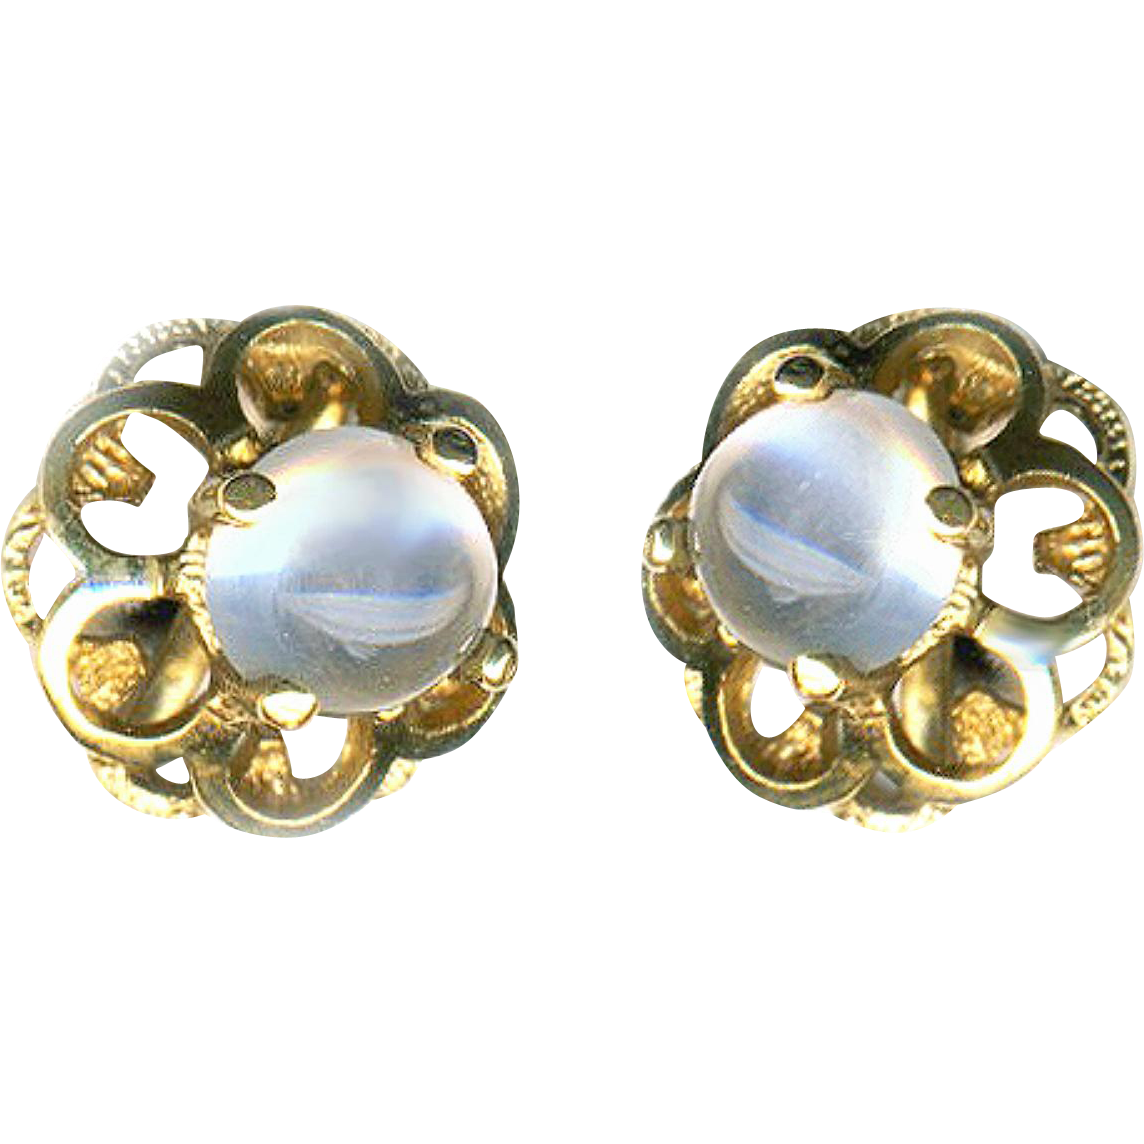 Earrings--Small Sturdy Modern Moonstones in 14 Karat Gold with Thread-on Backs